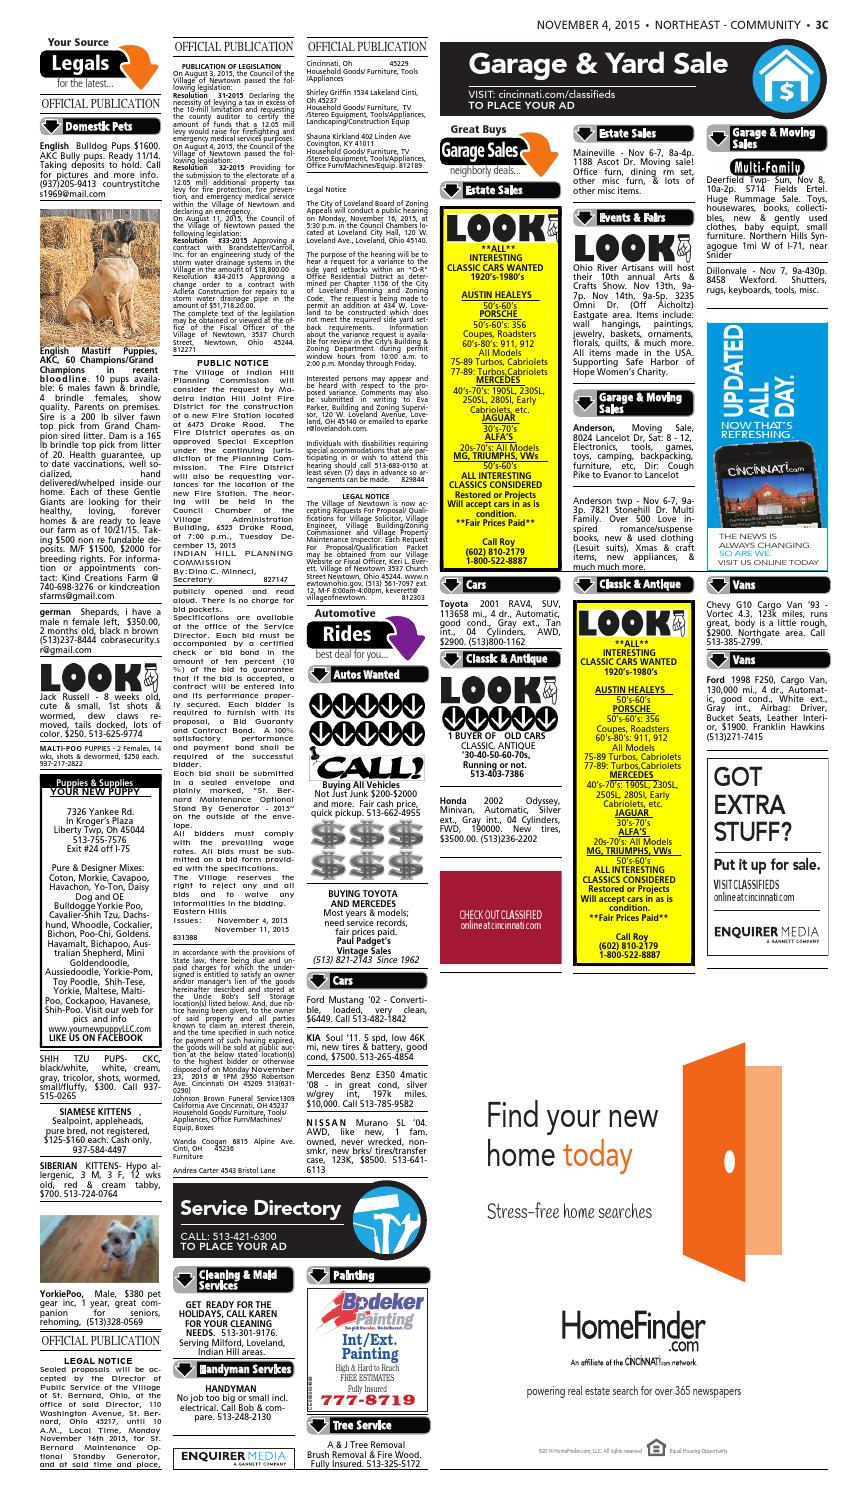 Indian hill journal 110415 by Enquirer Media - issuu